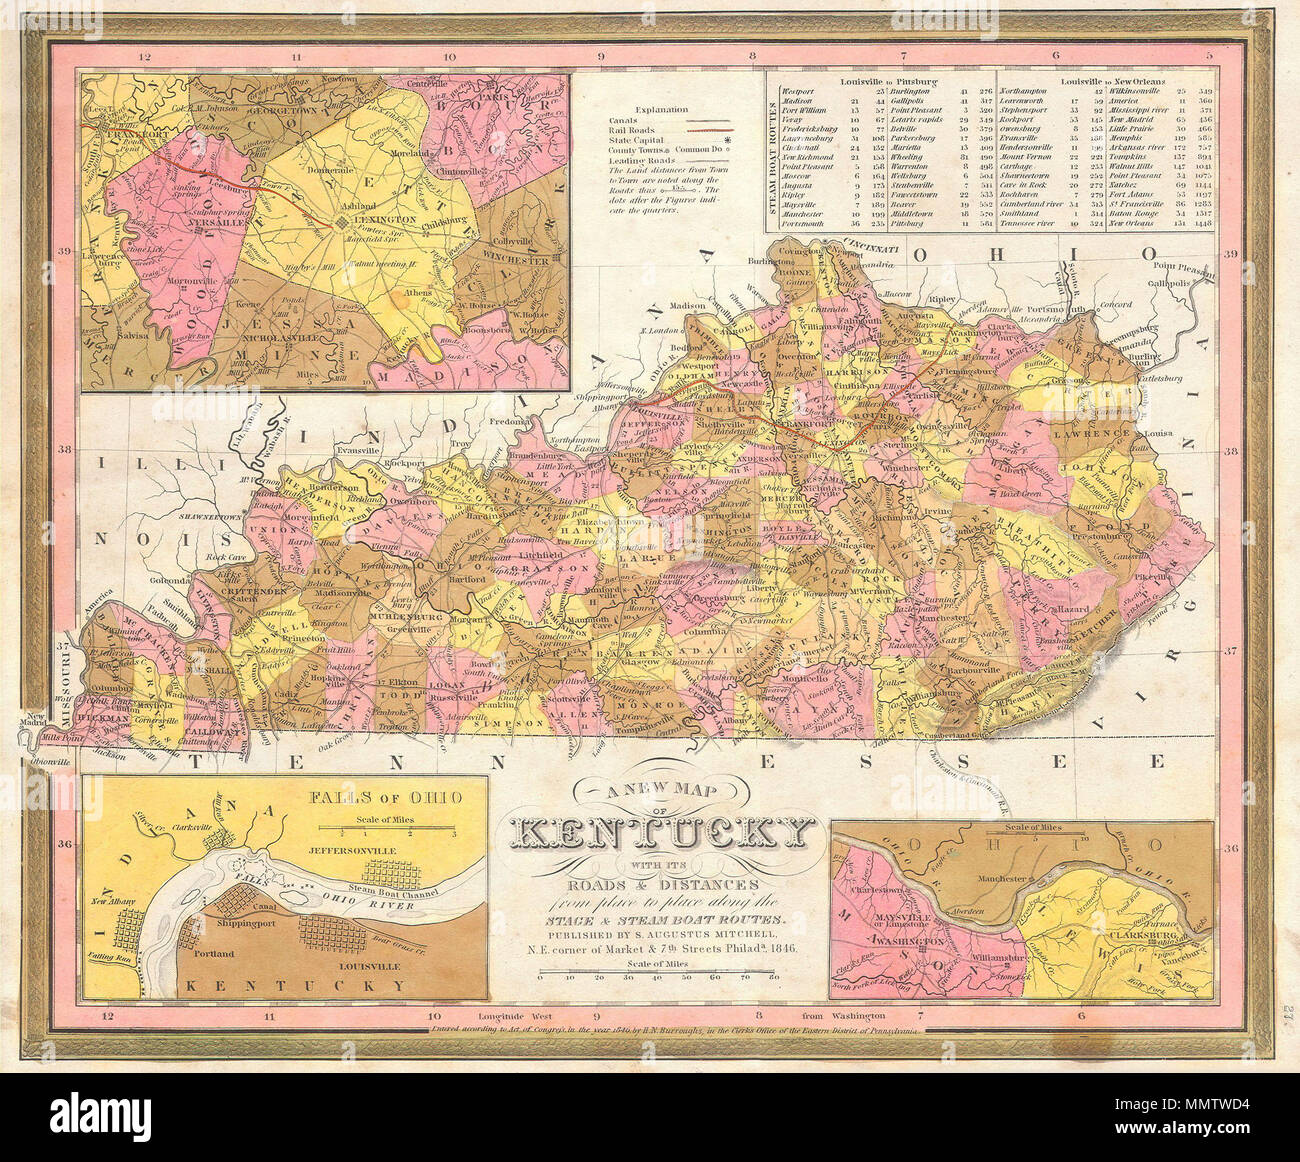 Falls Of The Ohio Map.English This Scarce Hand Colored Map Is A Lithographic Engraving Of